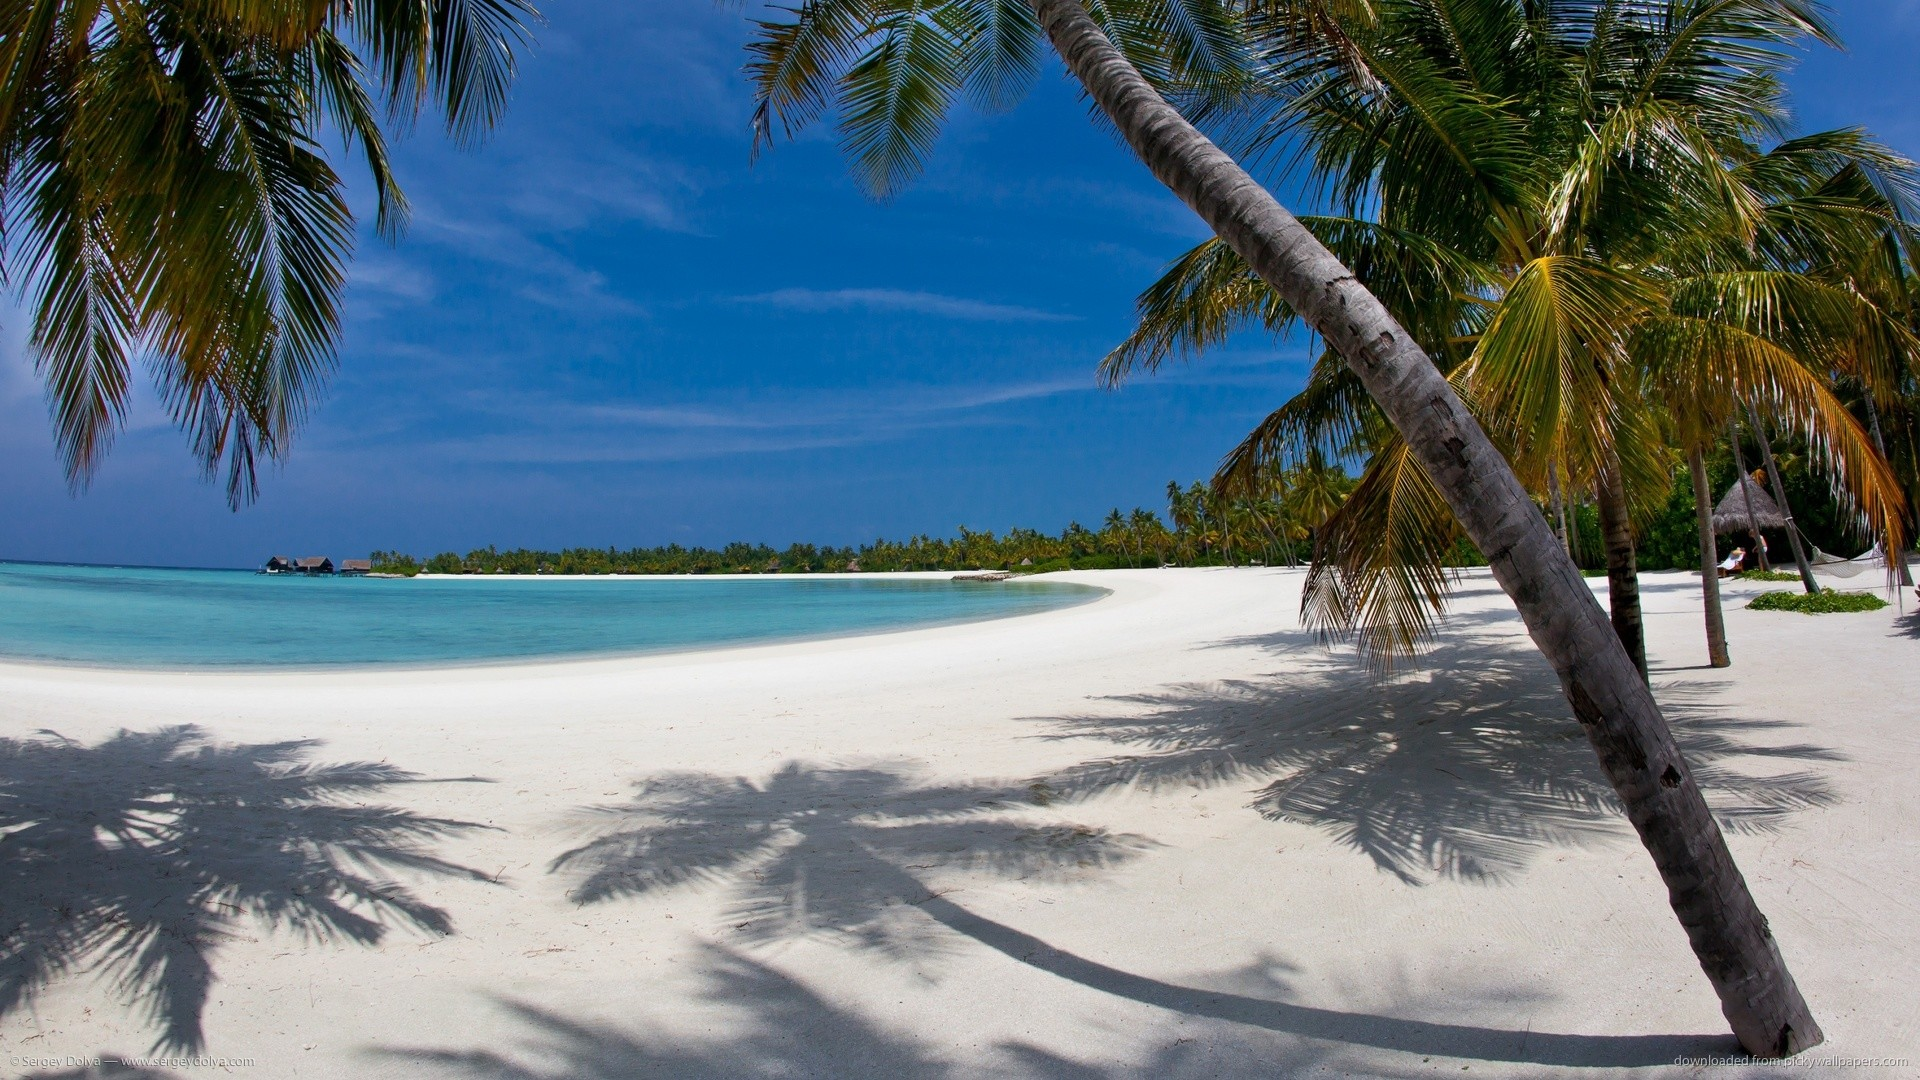 1920x1080 1440x900 Maldives Sand Beach with Palm Trees wallpaper